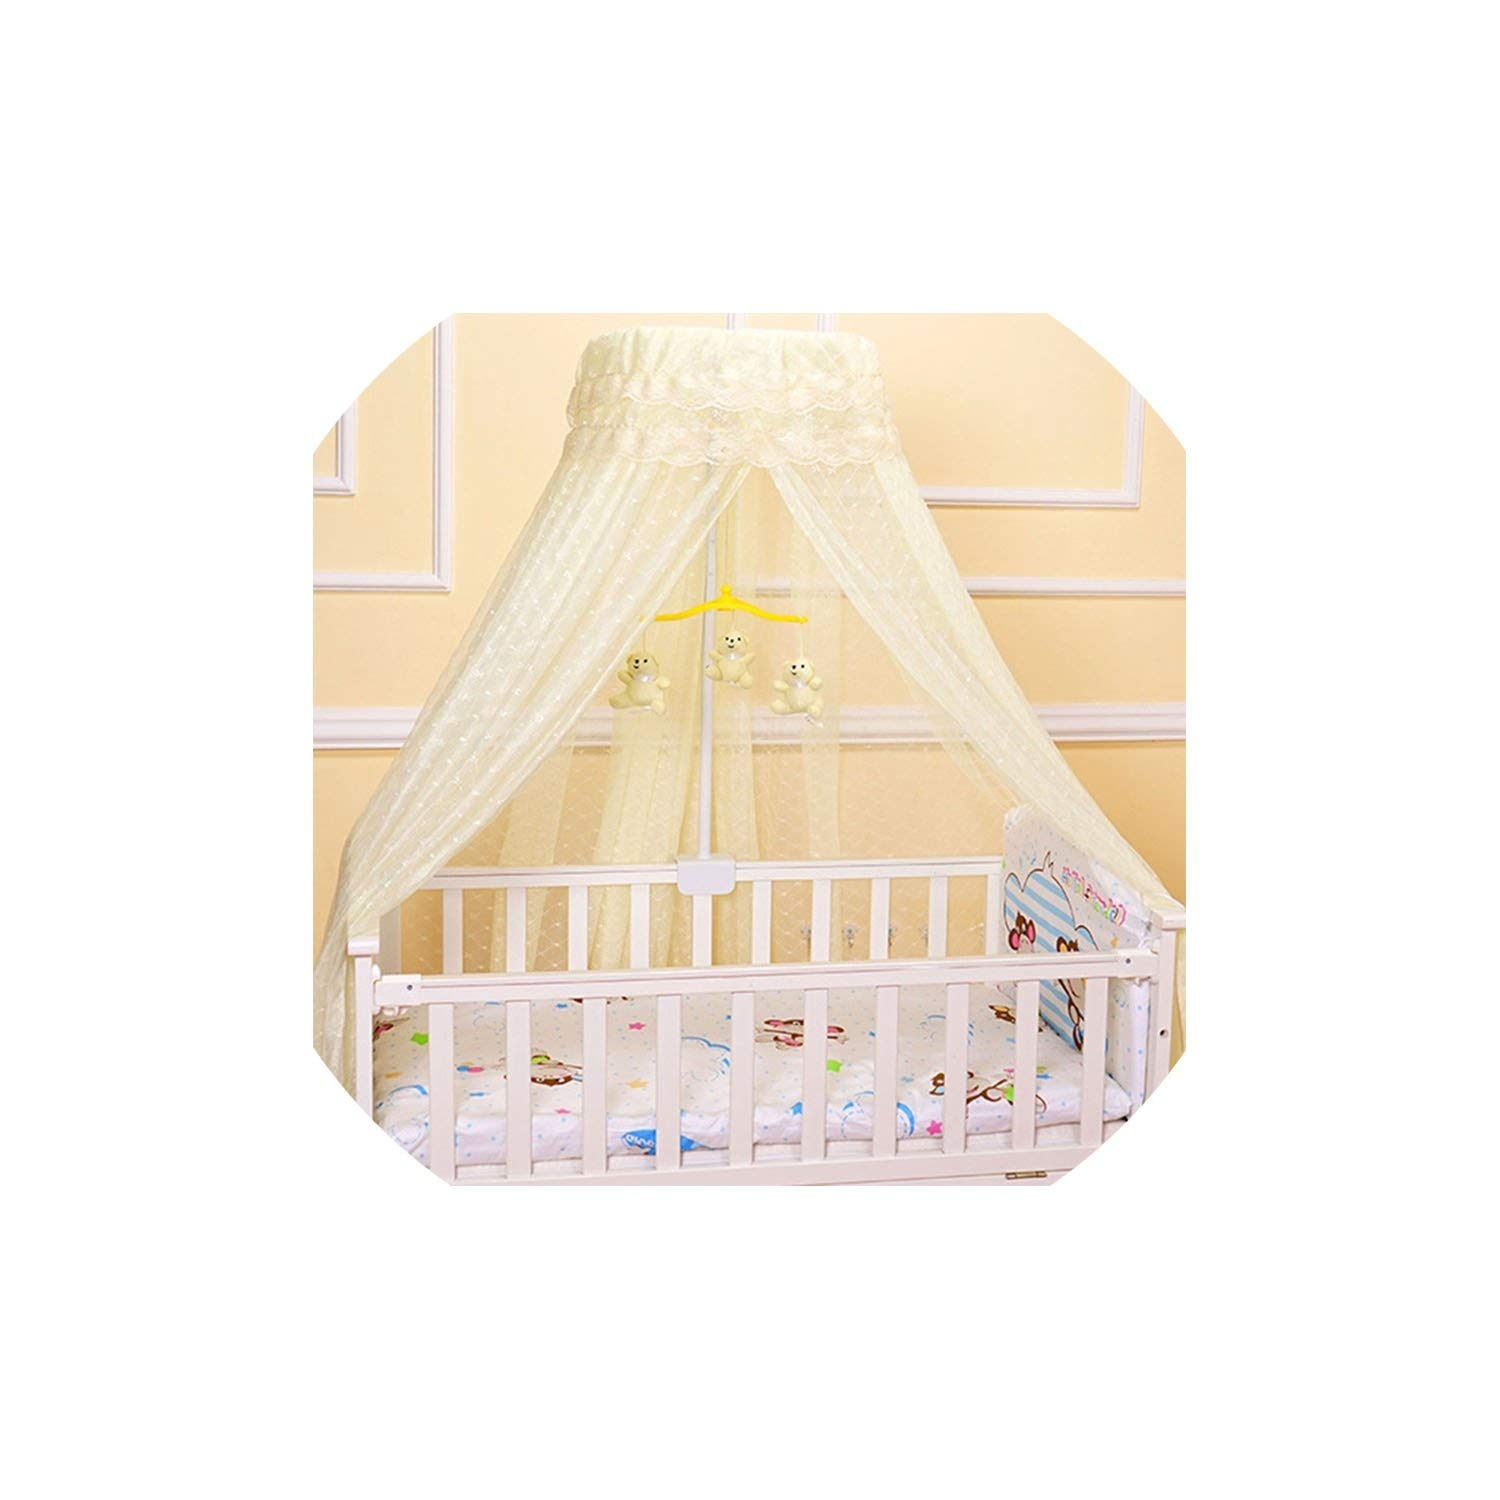 Round Baby Mosquito Net Romantic Printed Hung Dome Mosquito Netting Bed,Yellow,Height 200Cm